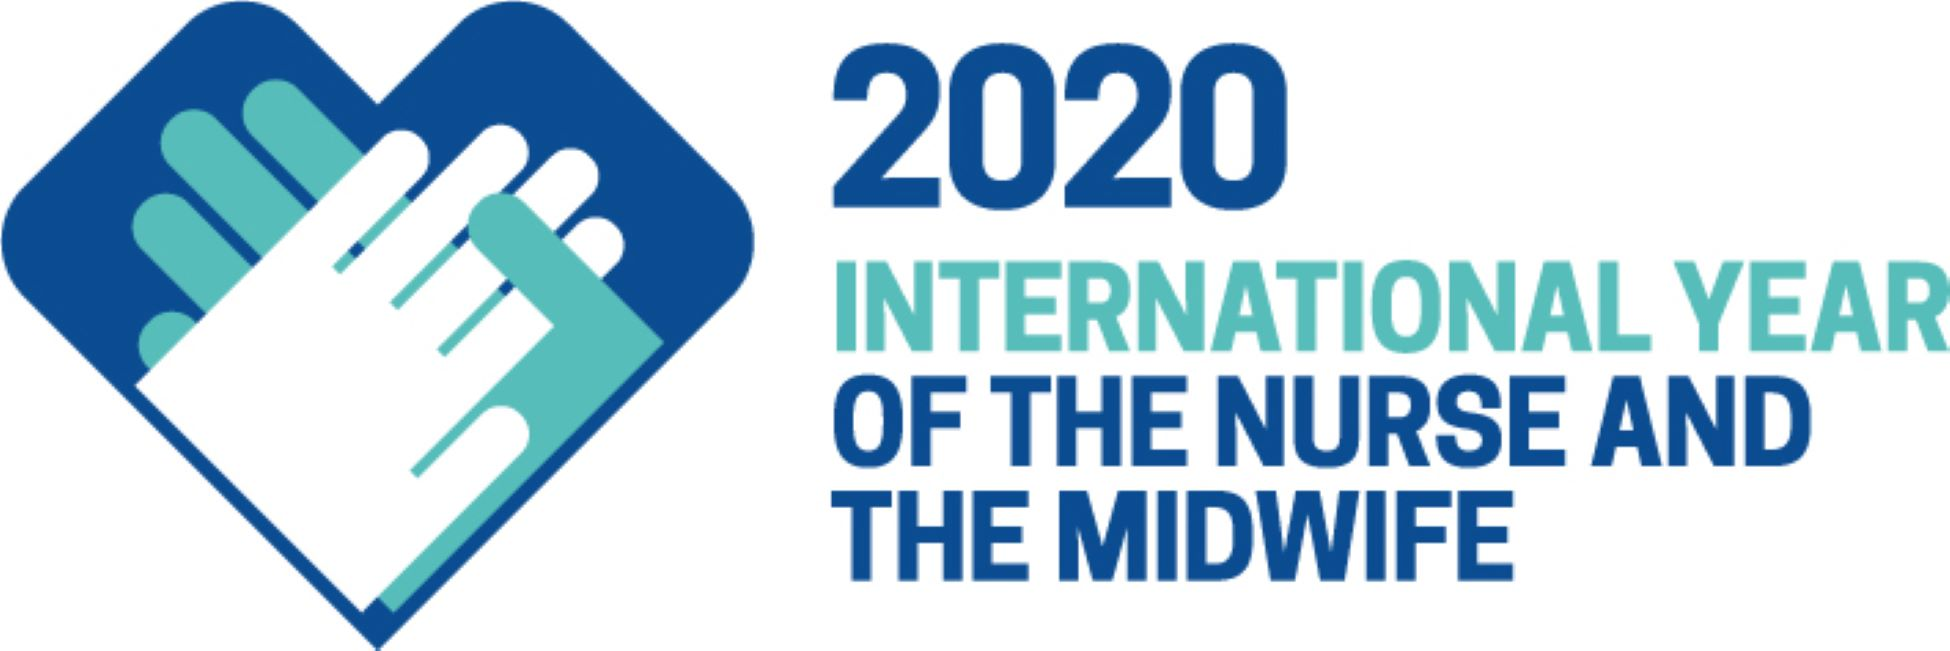 Nursing Home Costs 2020.Icn Calls On Heads Of State To Back The Year Of The Nurse